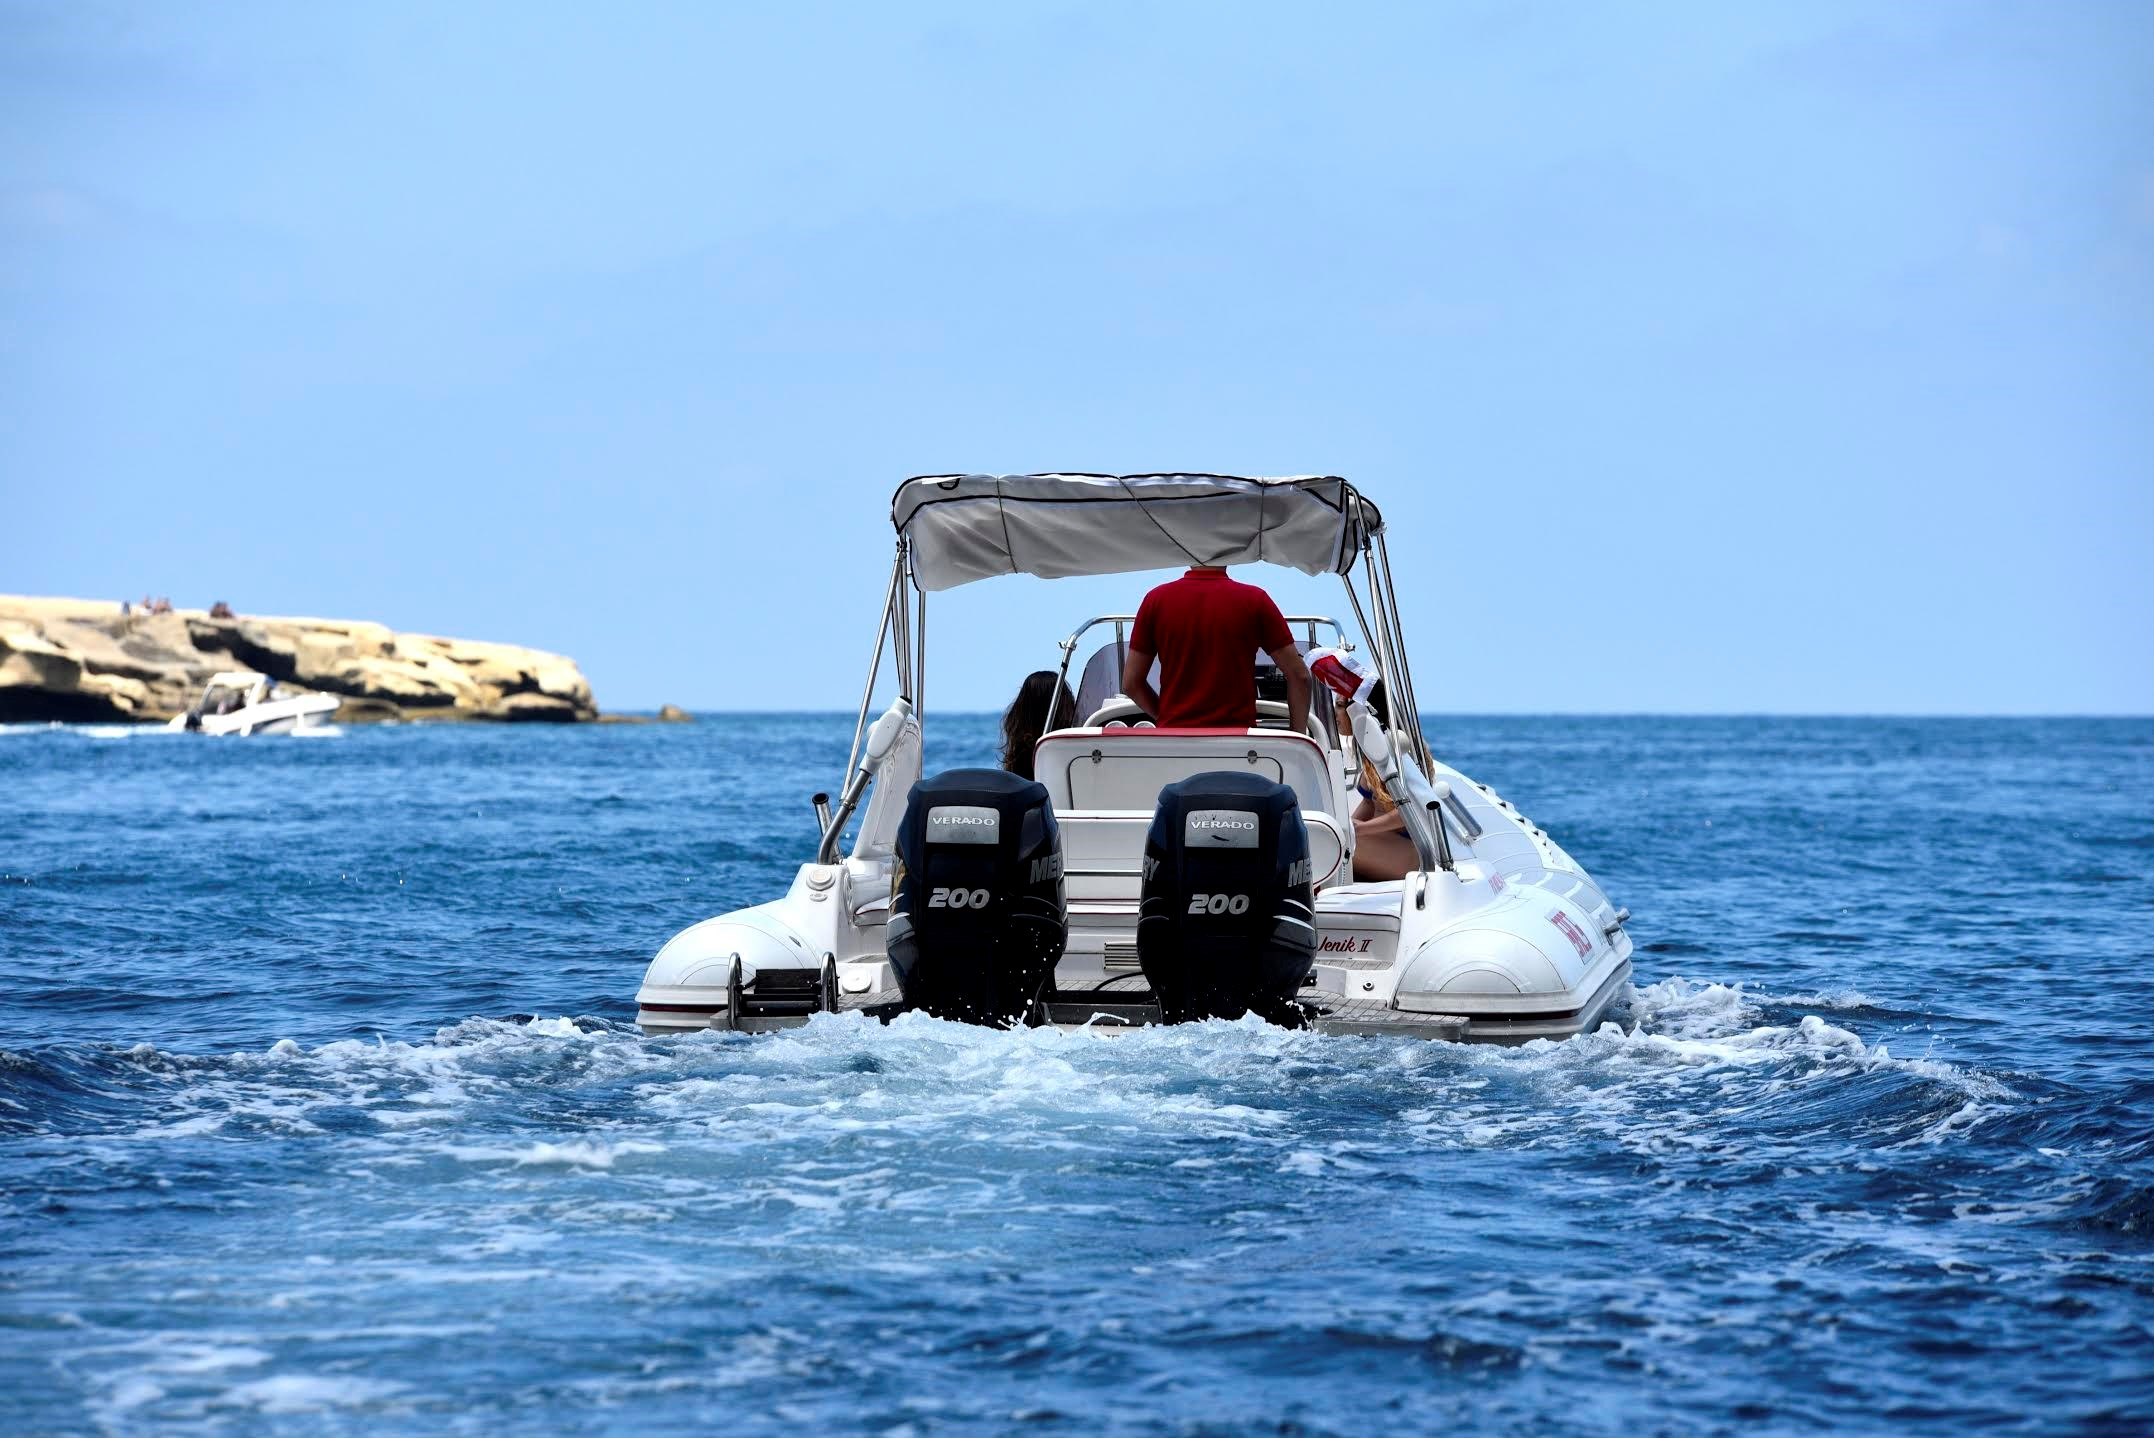 Rent / charter Rib / Dinghy for Boat Parties, Conference & Incentive / Meetings / Corporate, Full Day Tour, Half Day Tour, Harbour Cruise & Team Building Activities in Malta & Gozo - SACS 780